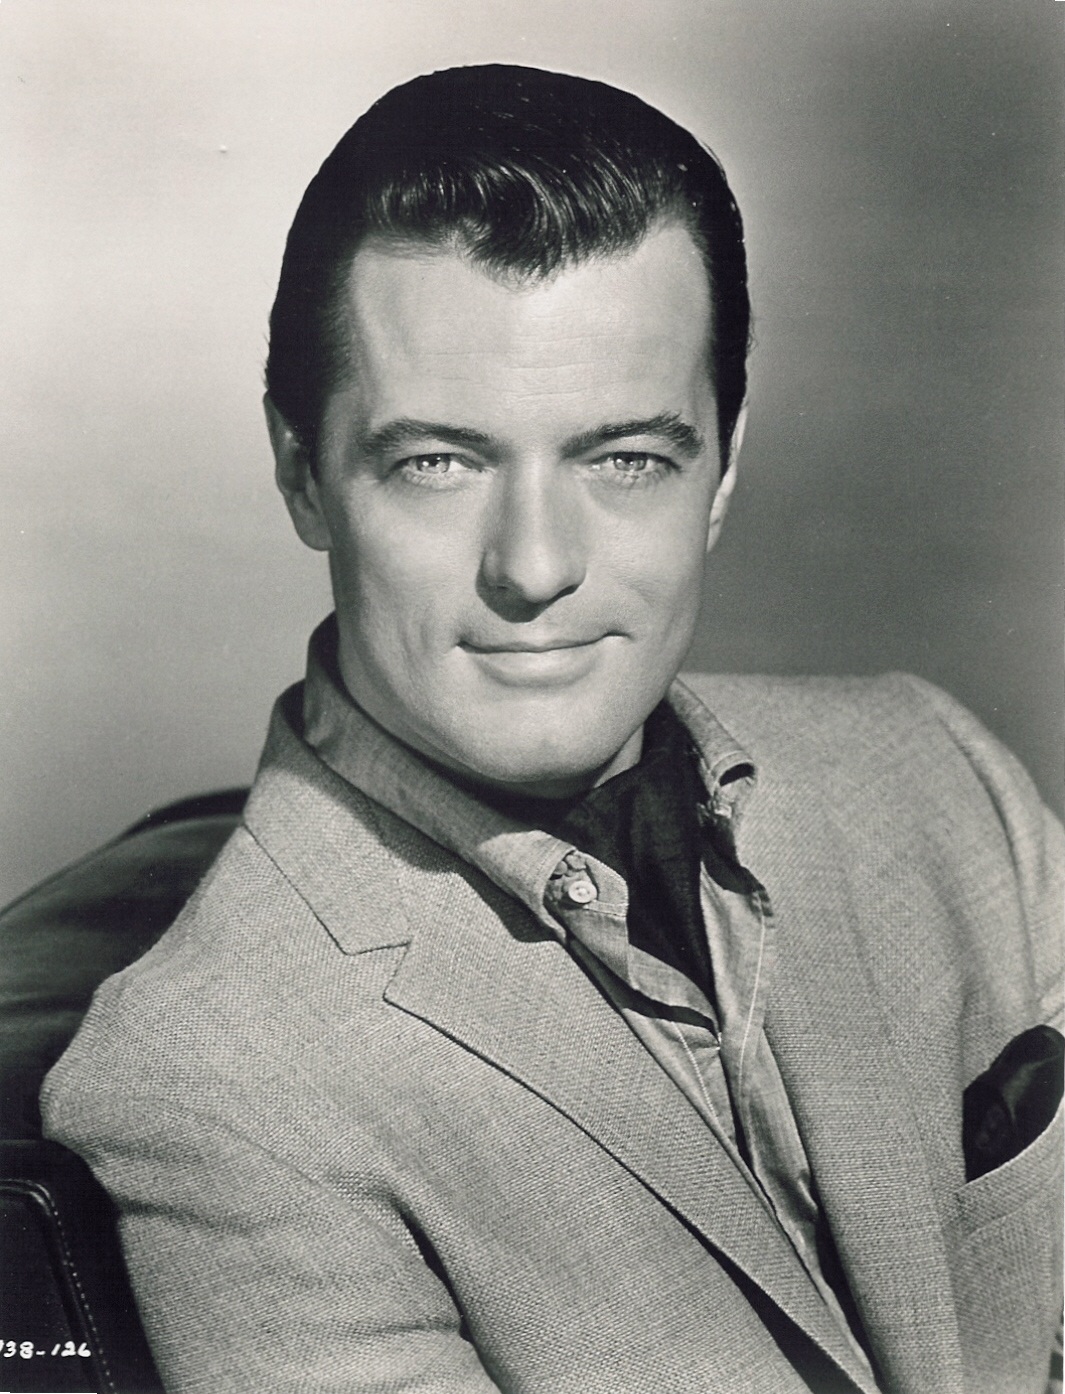 robert goulet - i remember yourobert goulet / summer sounds, robert goulet - i remember you, robert goulet - on broadway vol. 2, robert goulet on a clear day, robert goulet the girl that i marry, robert goulet impossible dream, robert goulet and elvis presley, robert goulet somewhere my love, robert goulet some enchanted evening, robert goulet julie andrews, robert goulet, robert goulet will ferrell, robert goulet snl, robert goulet songs, robert goulet youtube, robert goulet camelot, robert goulet will ferrell snl, robert goulet if ever i would leave you lyrics, robert goulet discography, robert goulet jay z